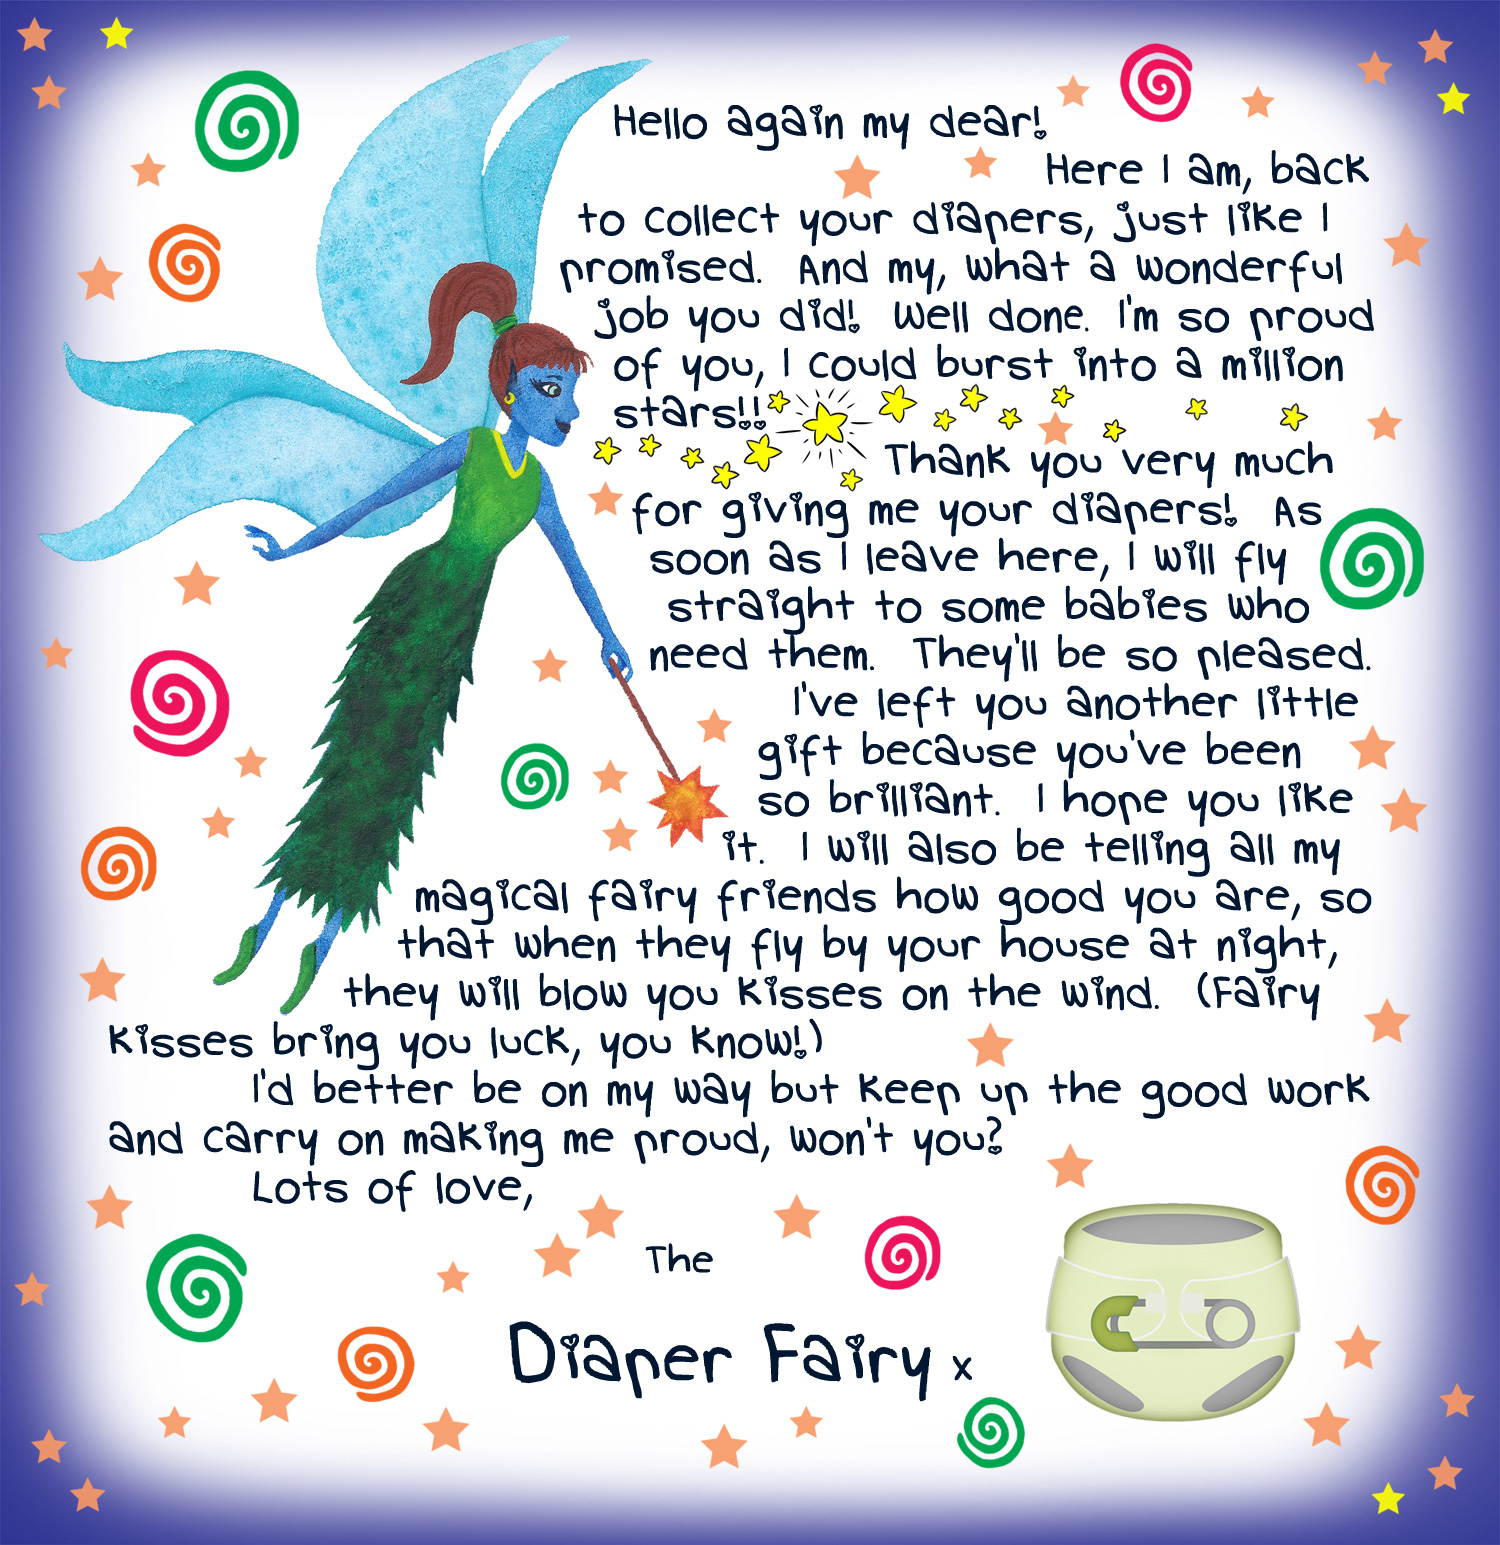 Second letter from the Diaper Fairy, free to print for your child.